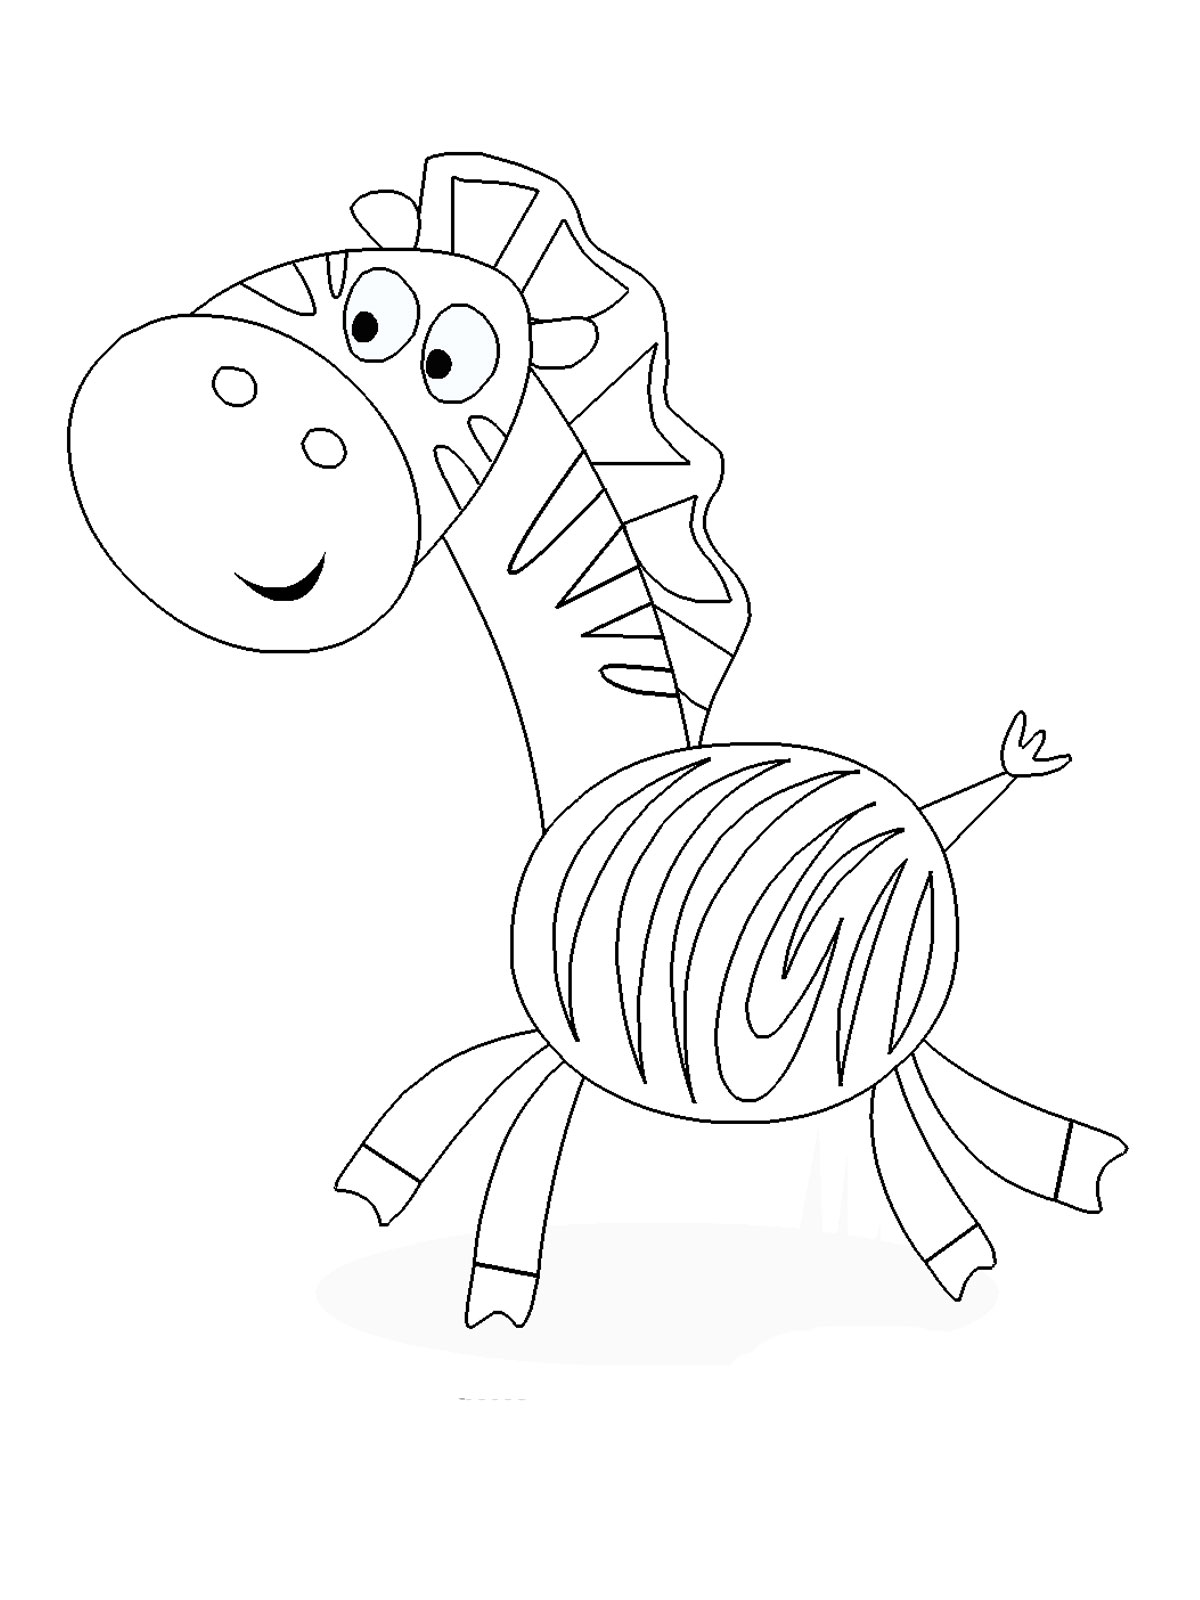 coloring printable pages for kids free printable bambi coloring pages for kids pages for printable kids coloring